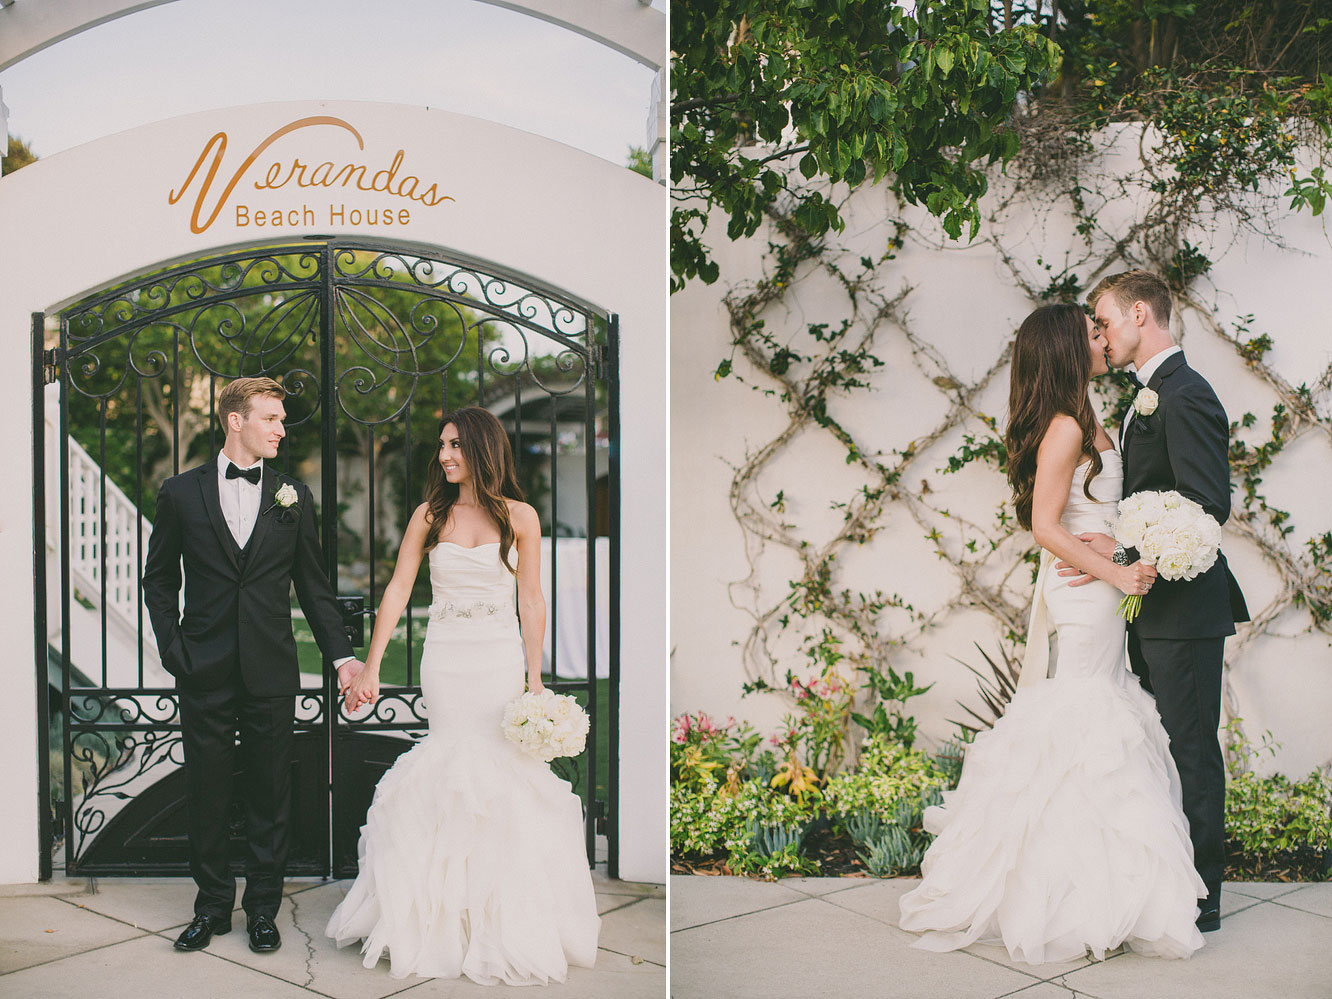 verandas-manhattan-beach-wedding-48